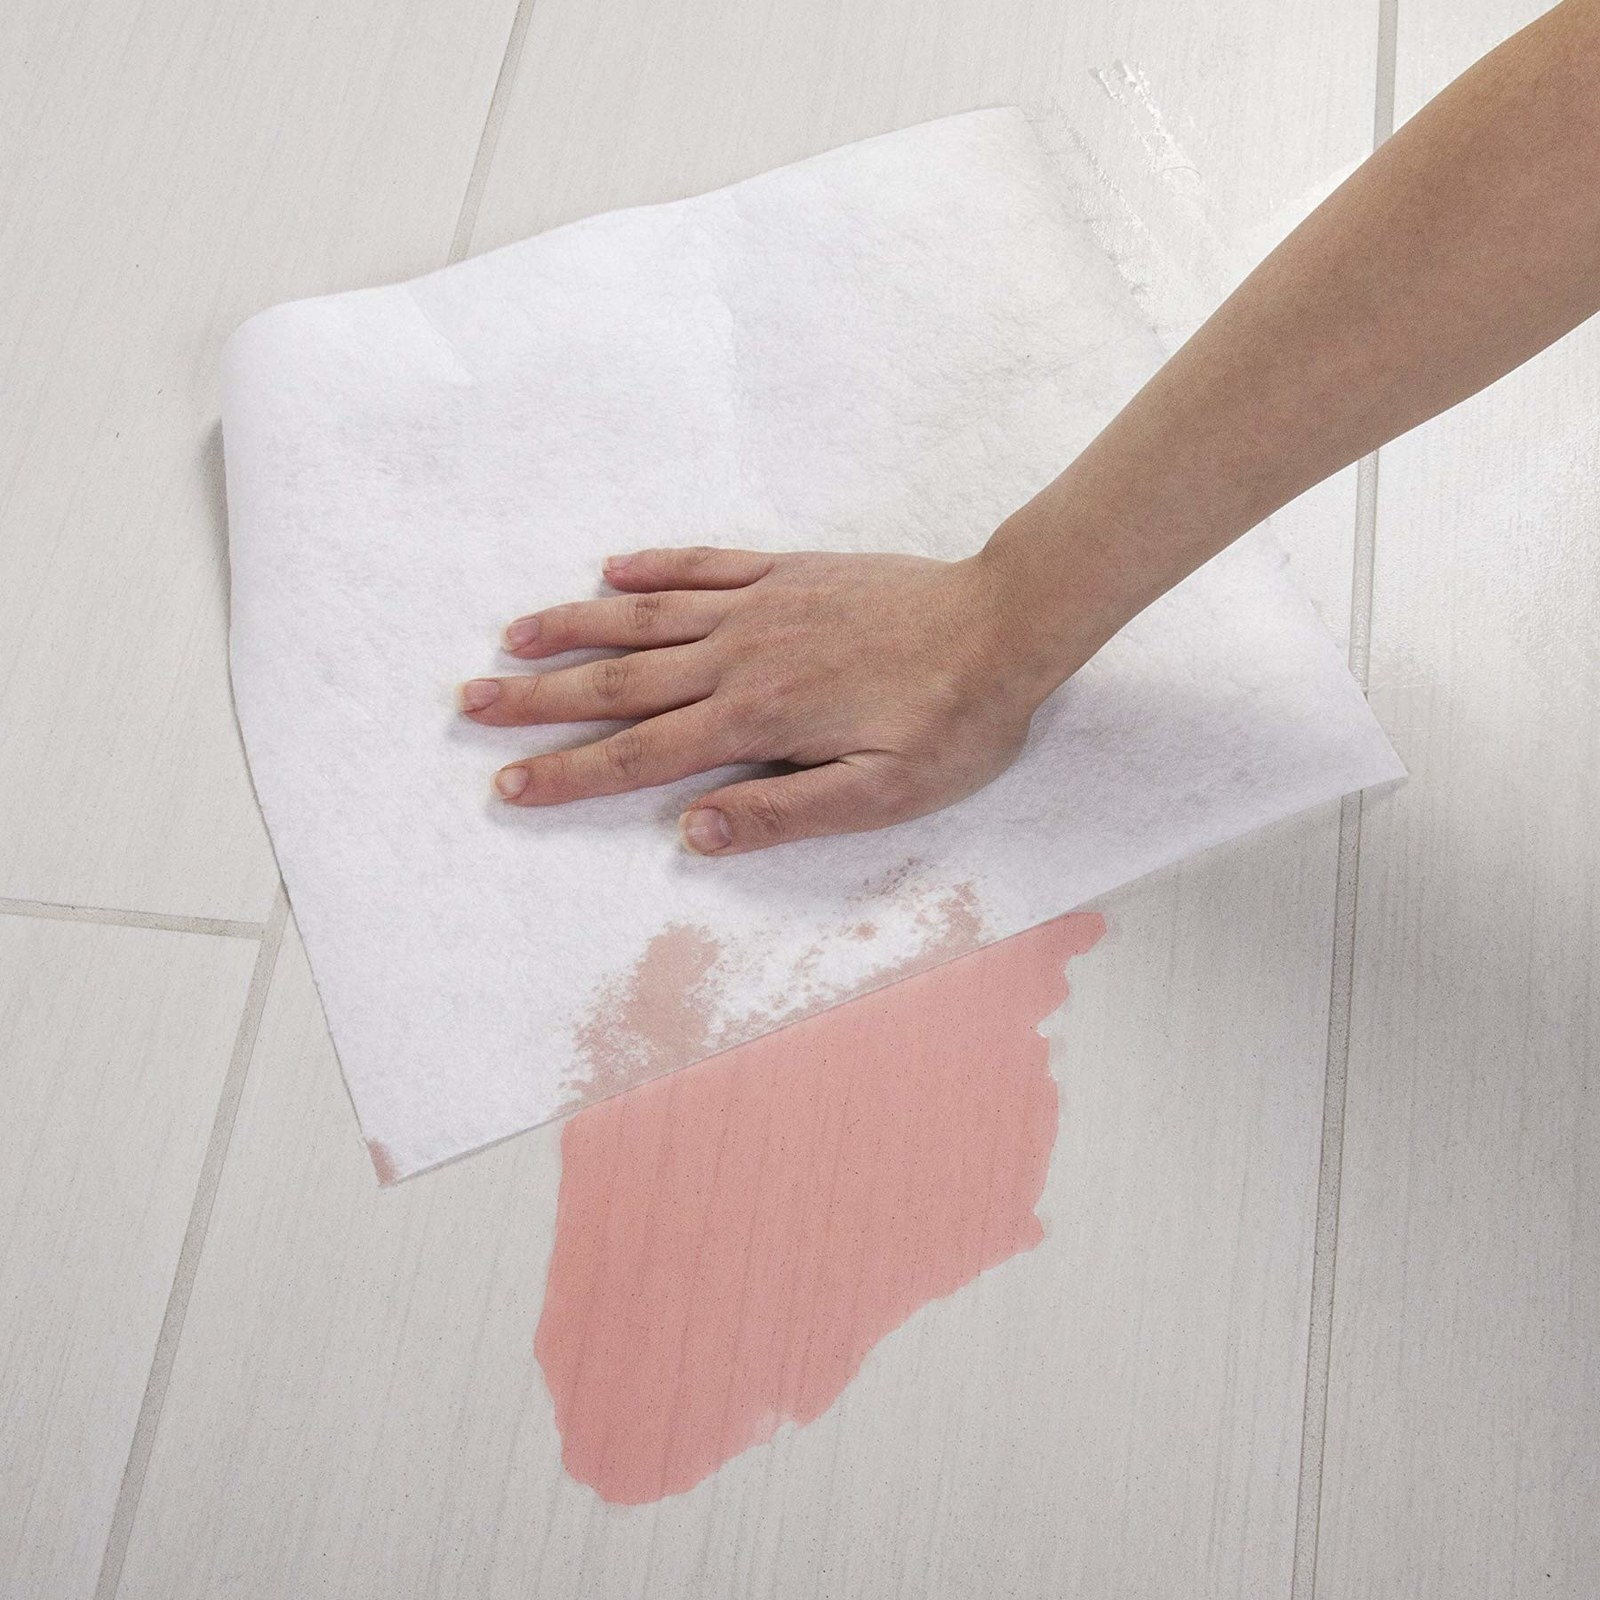 person wipe up a red liquid with the reusable bamboo paper towel